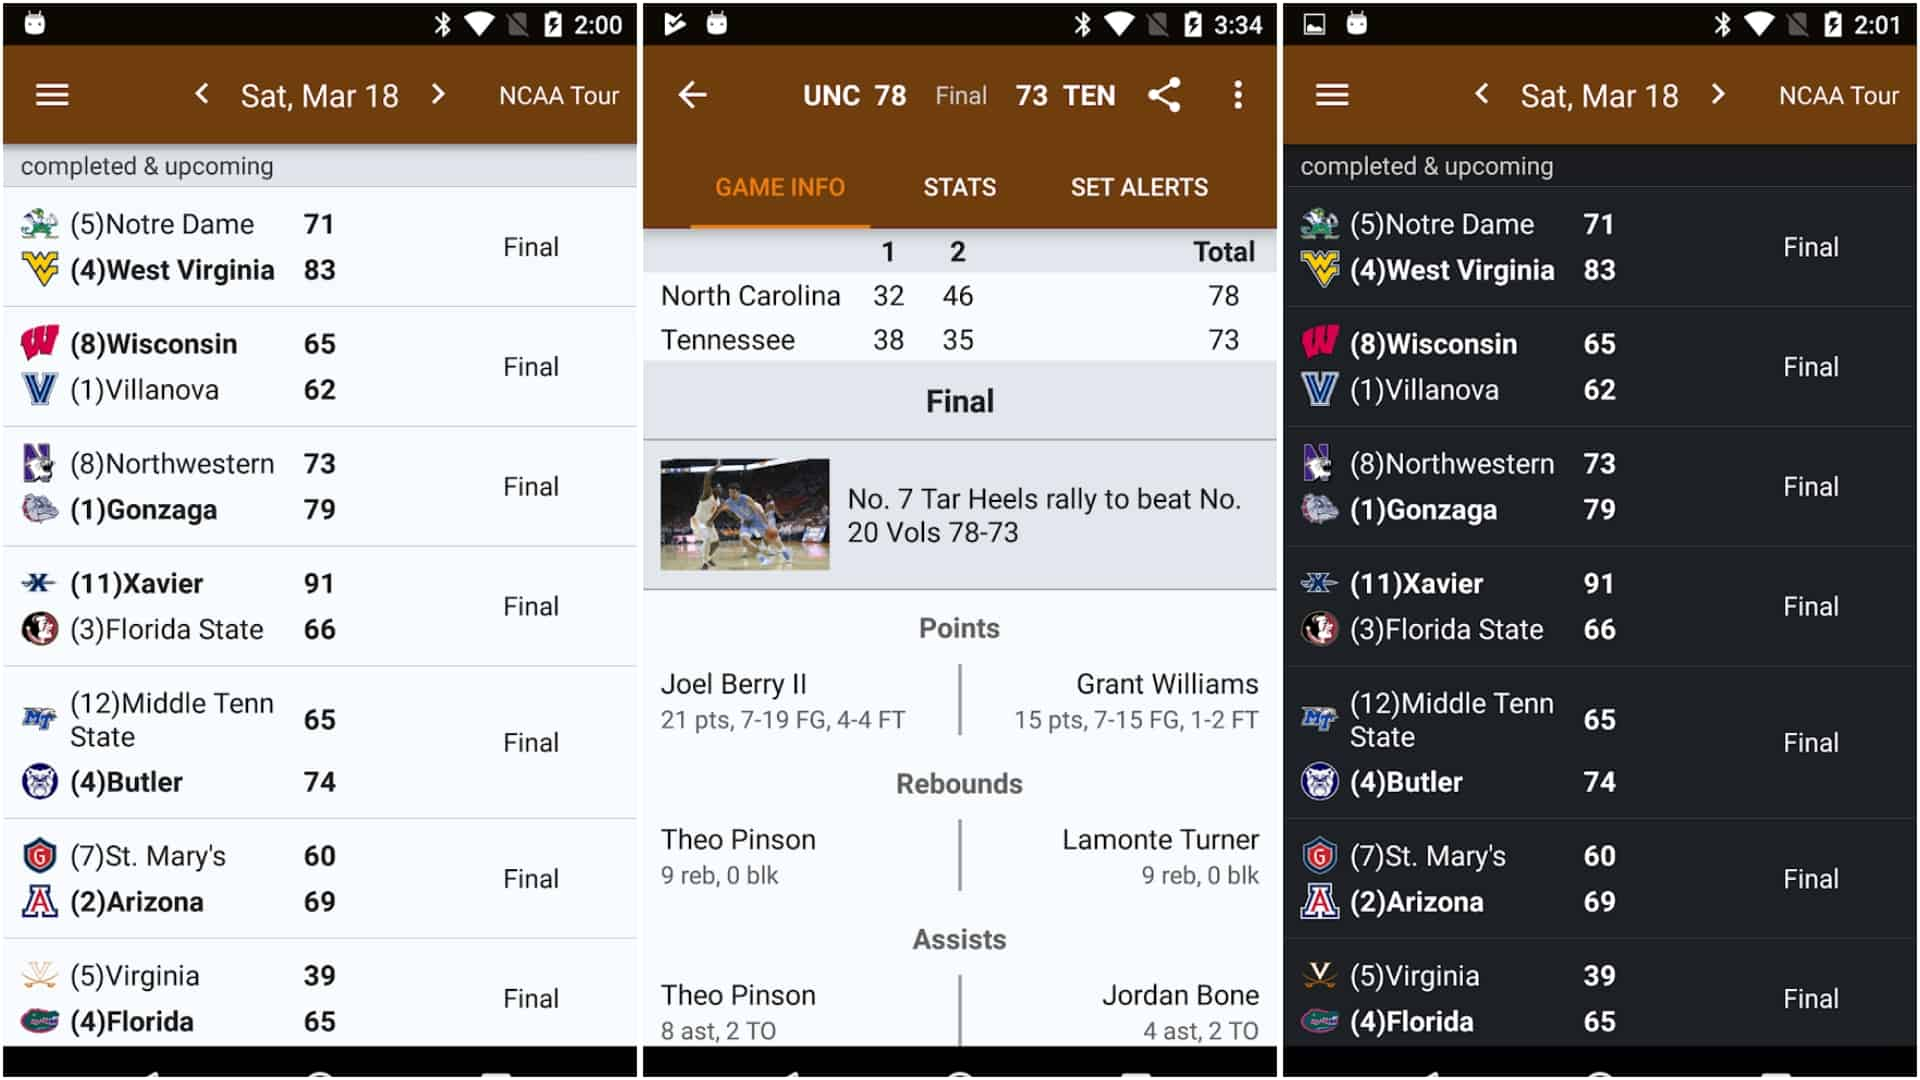 Sports Alerts NCAA Basketball Edition app image March 2020